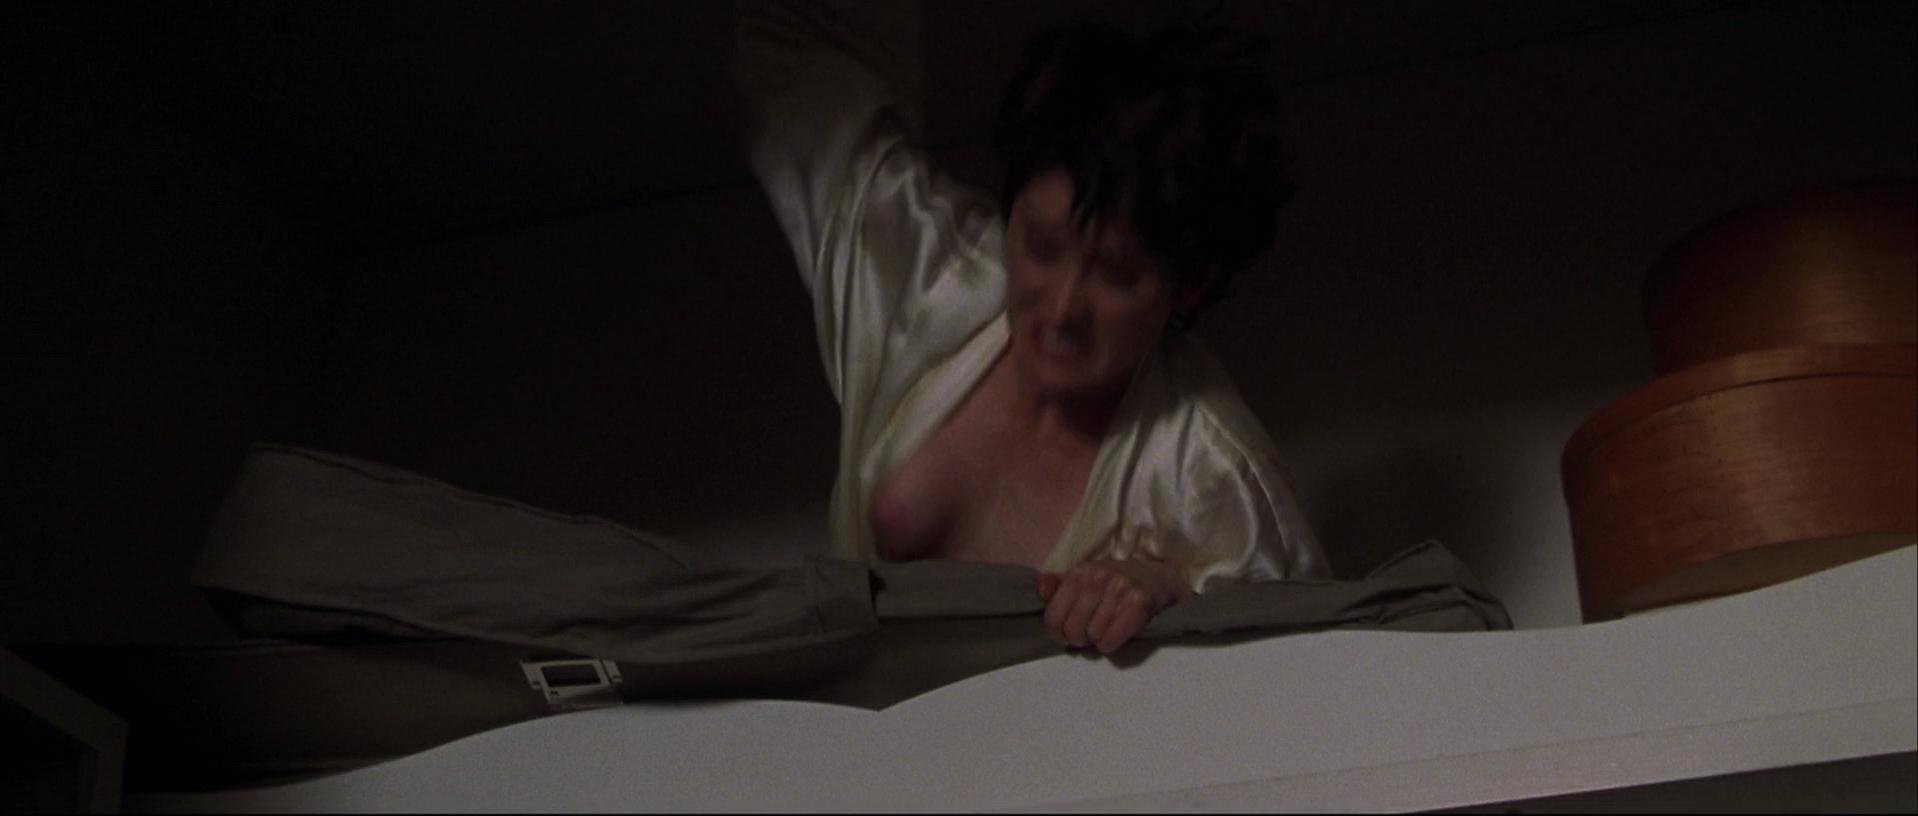 Robin Tunney nude - End of Days (1999)